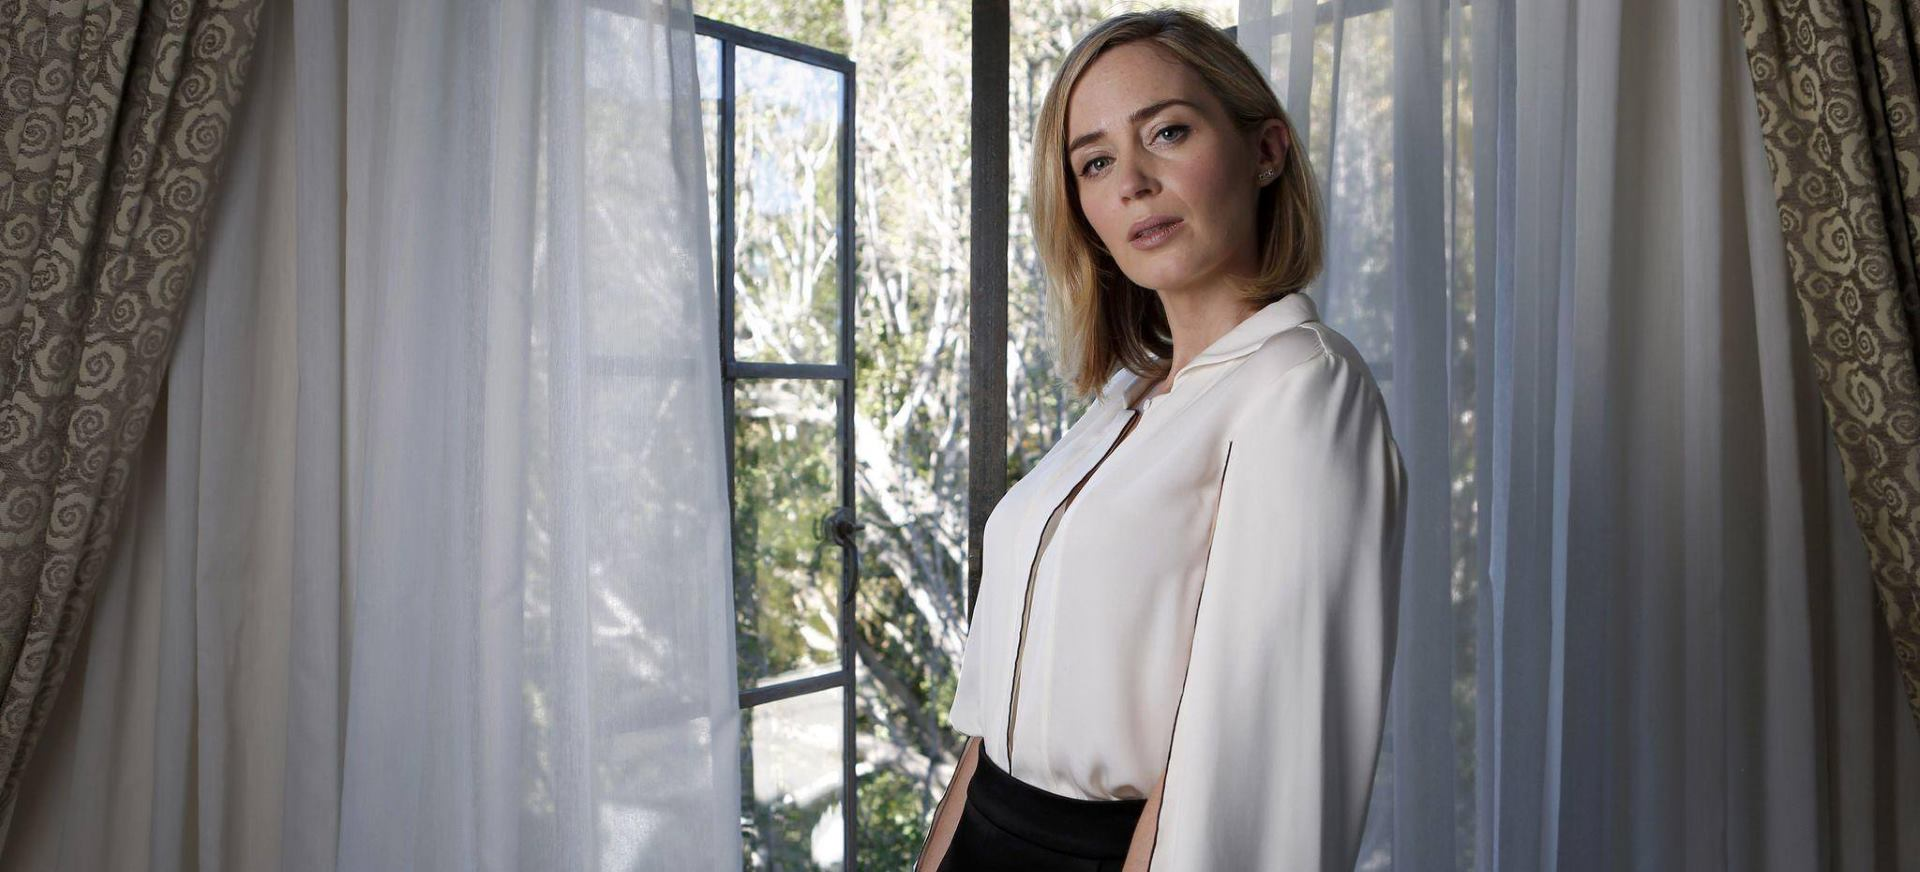 VIDEO: Emily Blunt osvojila filmsku nagradu SAG Award